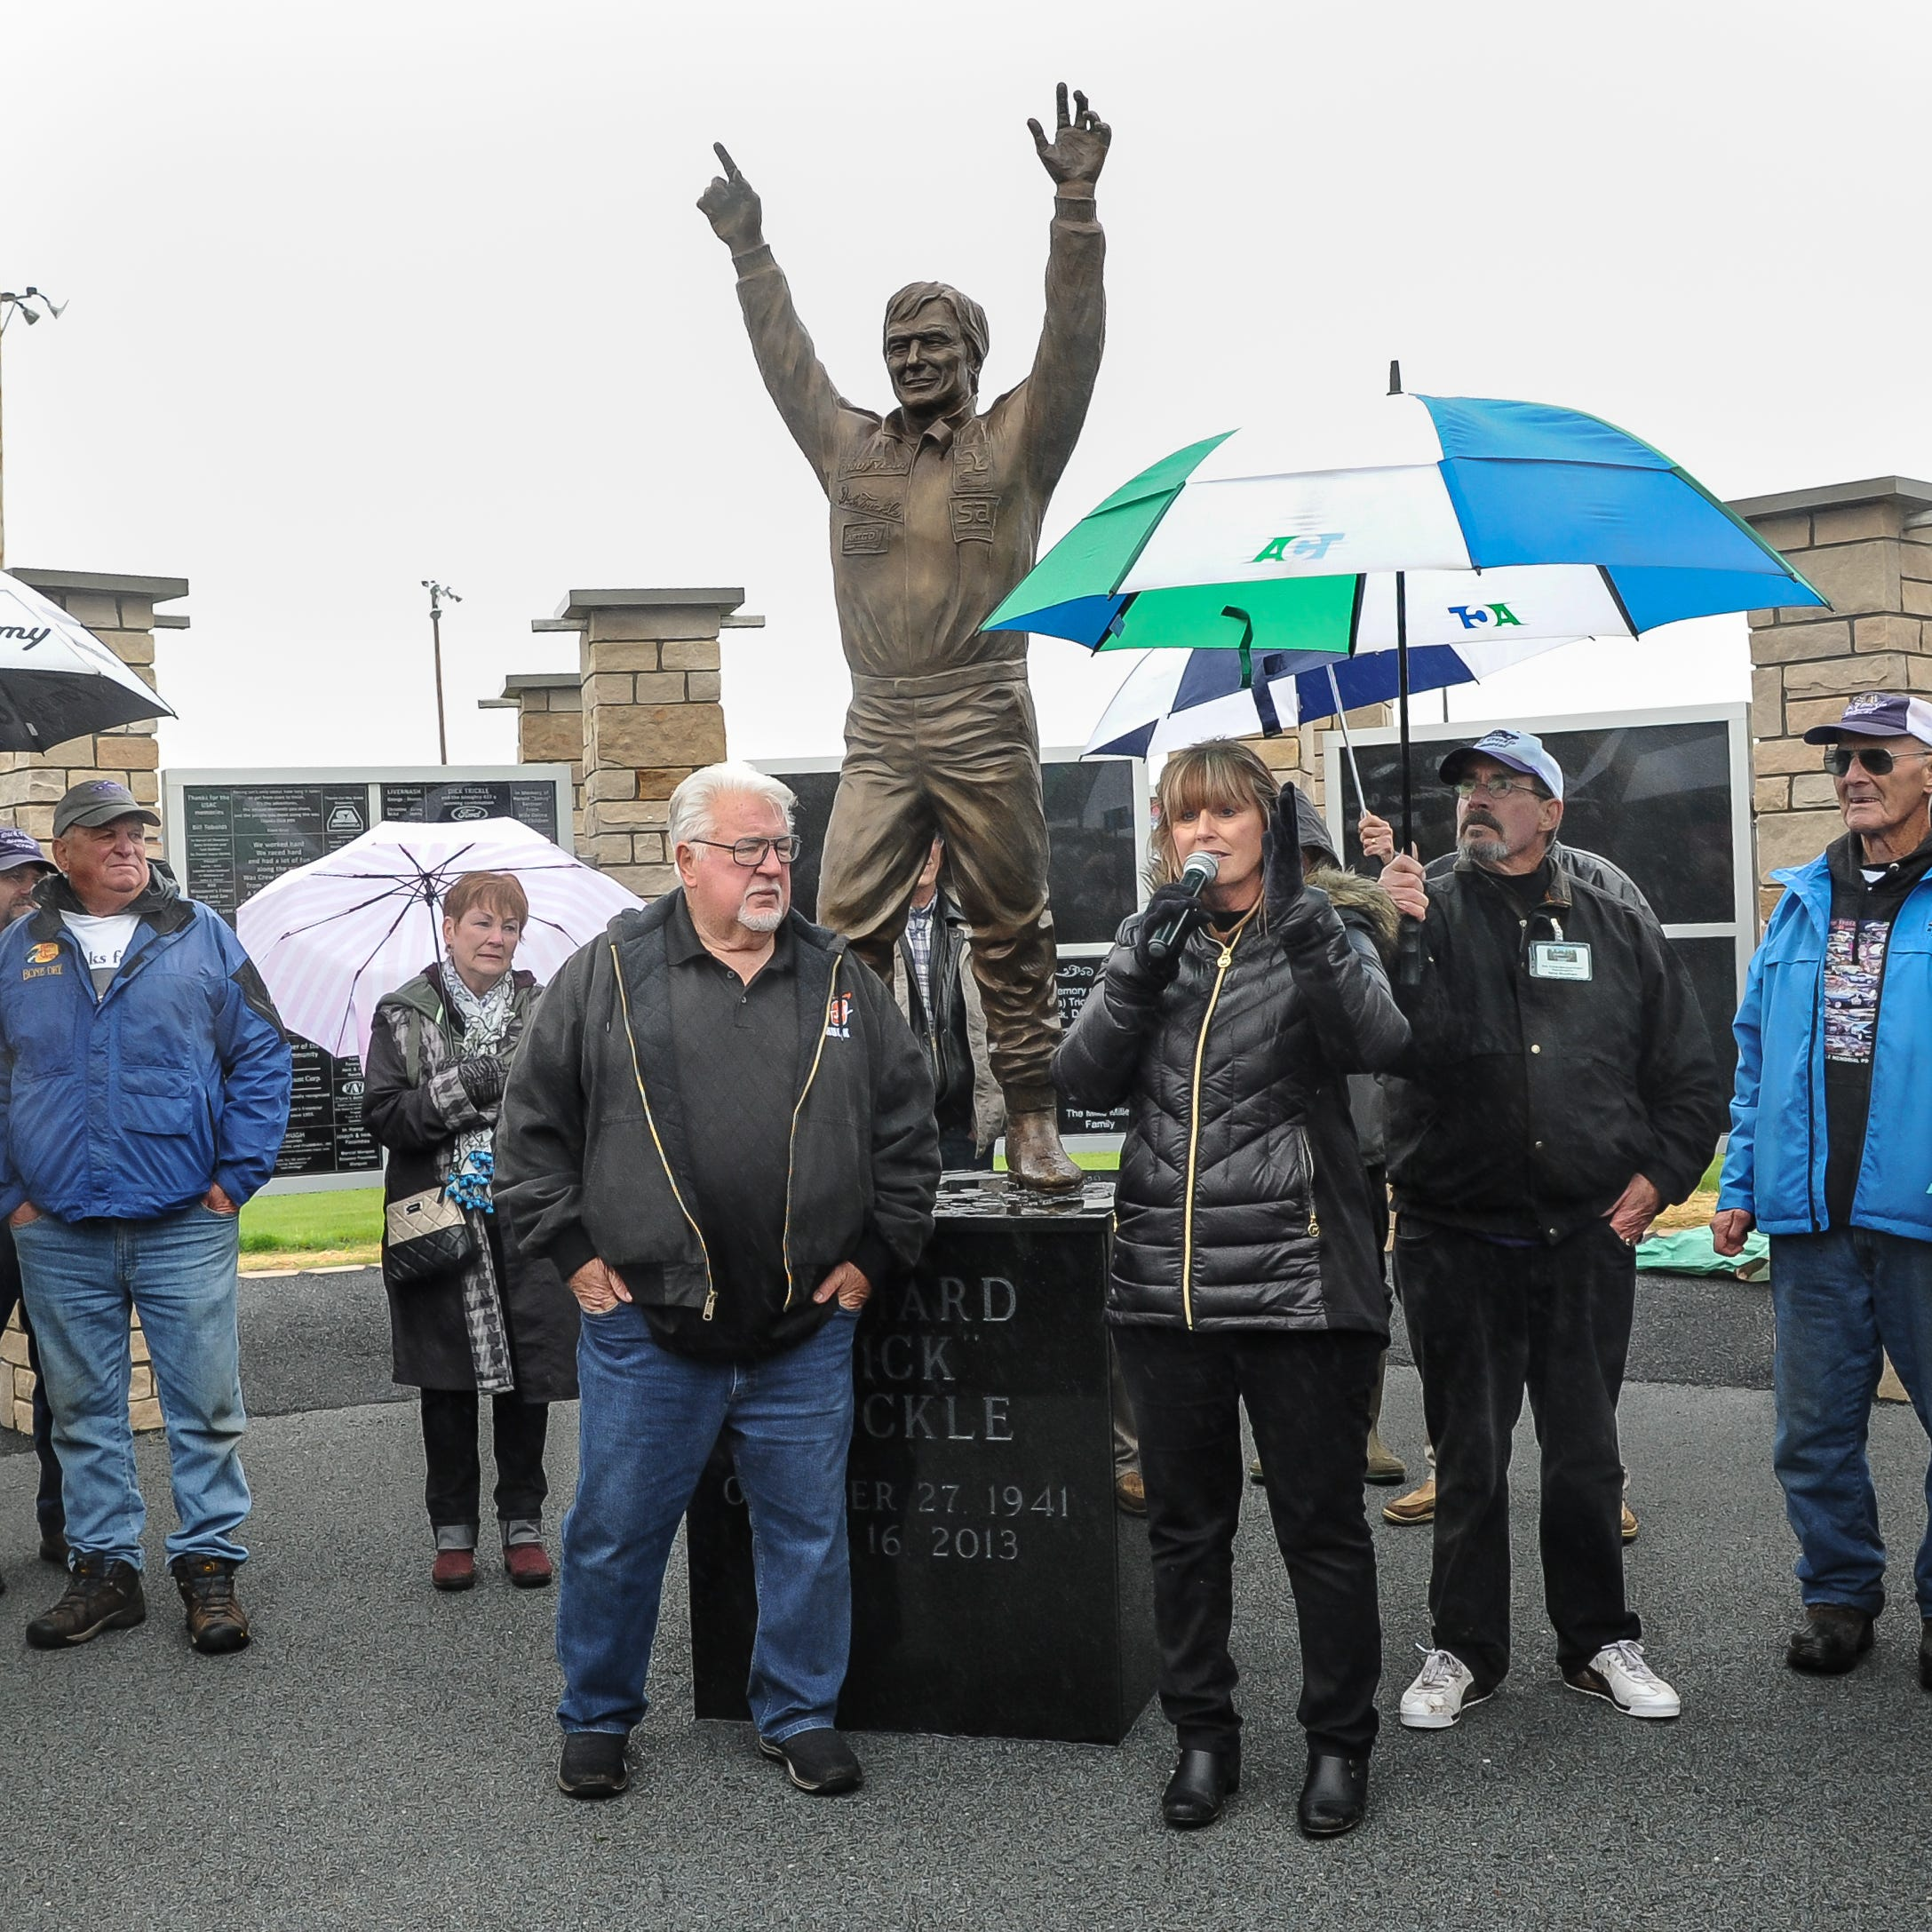 Family, friends and fans turned out in the rain to honor Dick Trickle with a statue, tall tales and a couple of PBRs